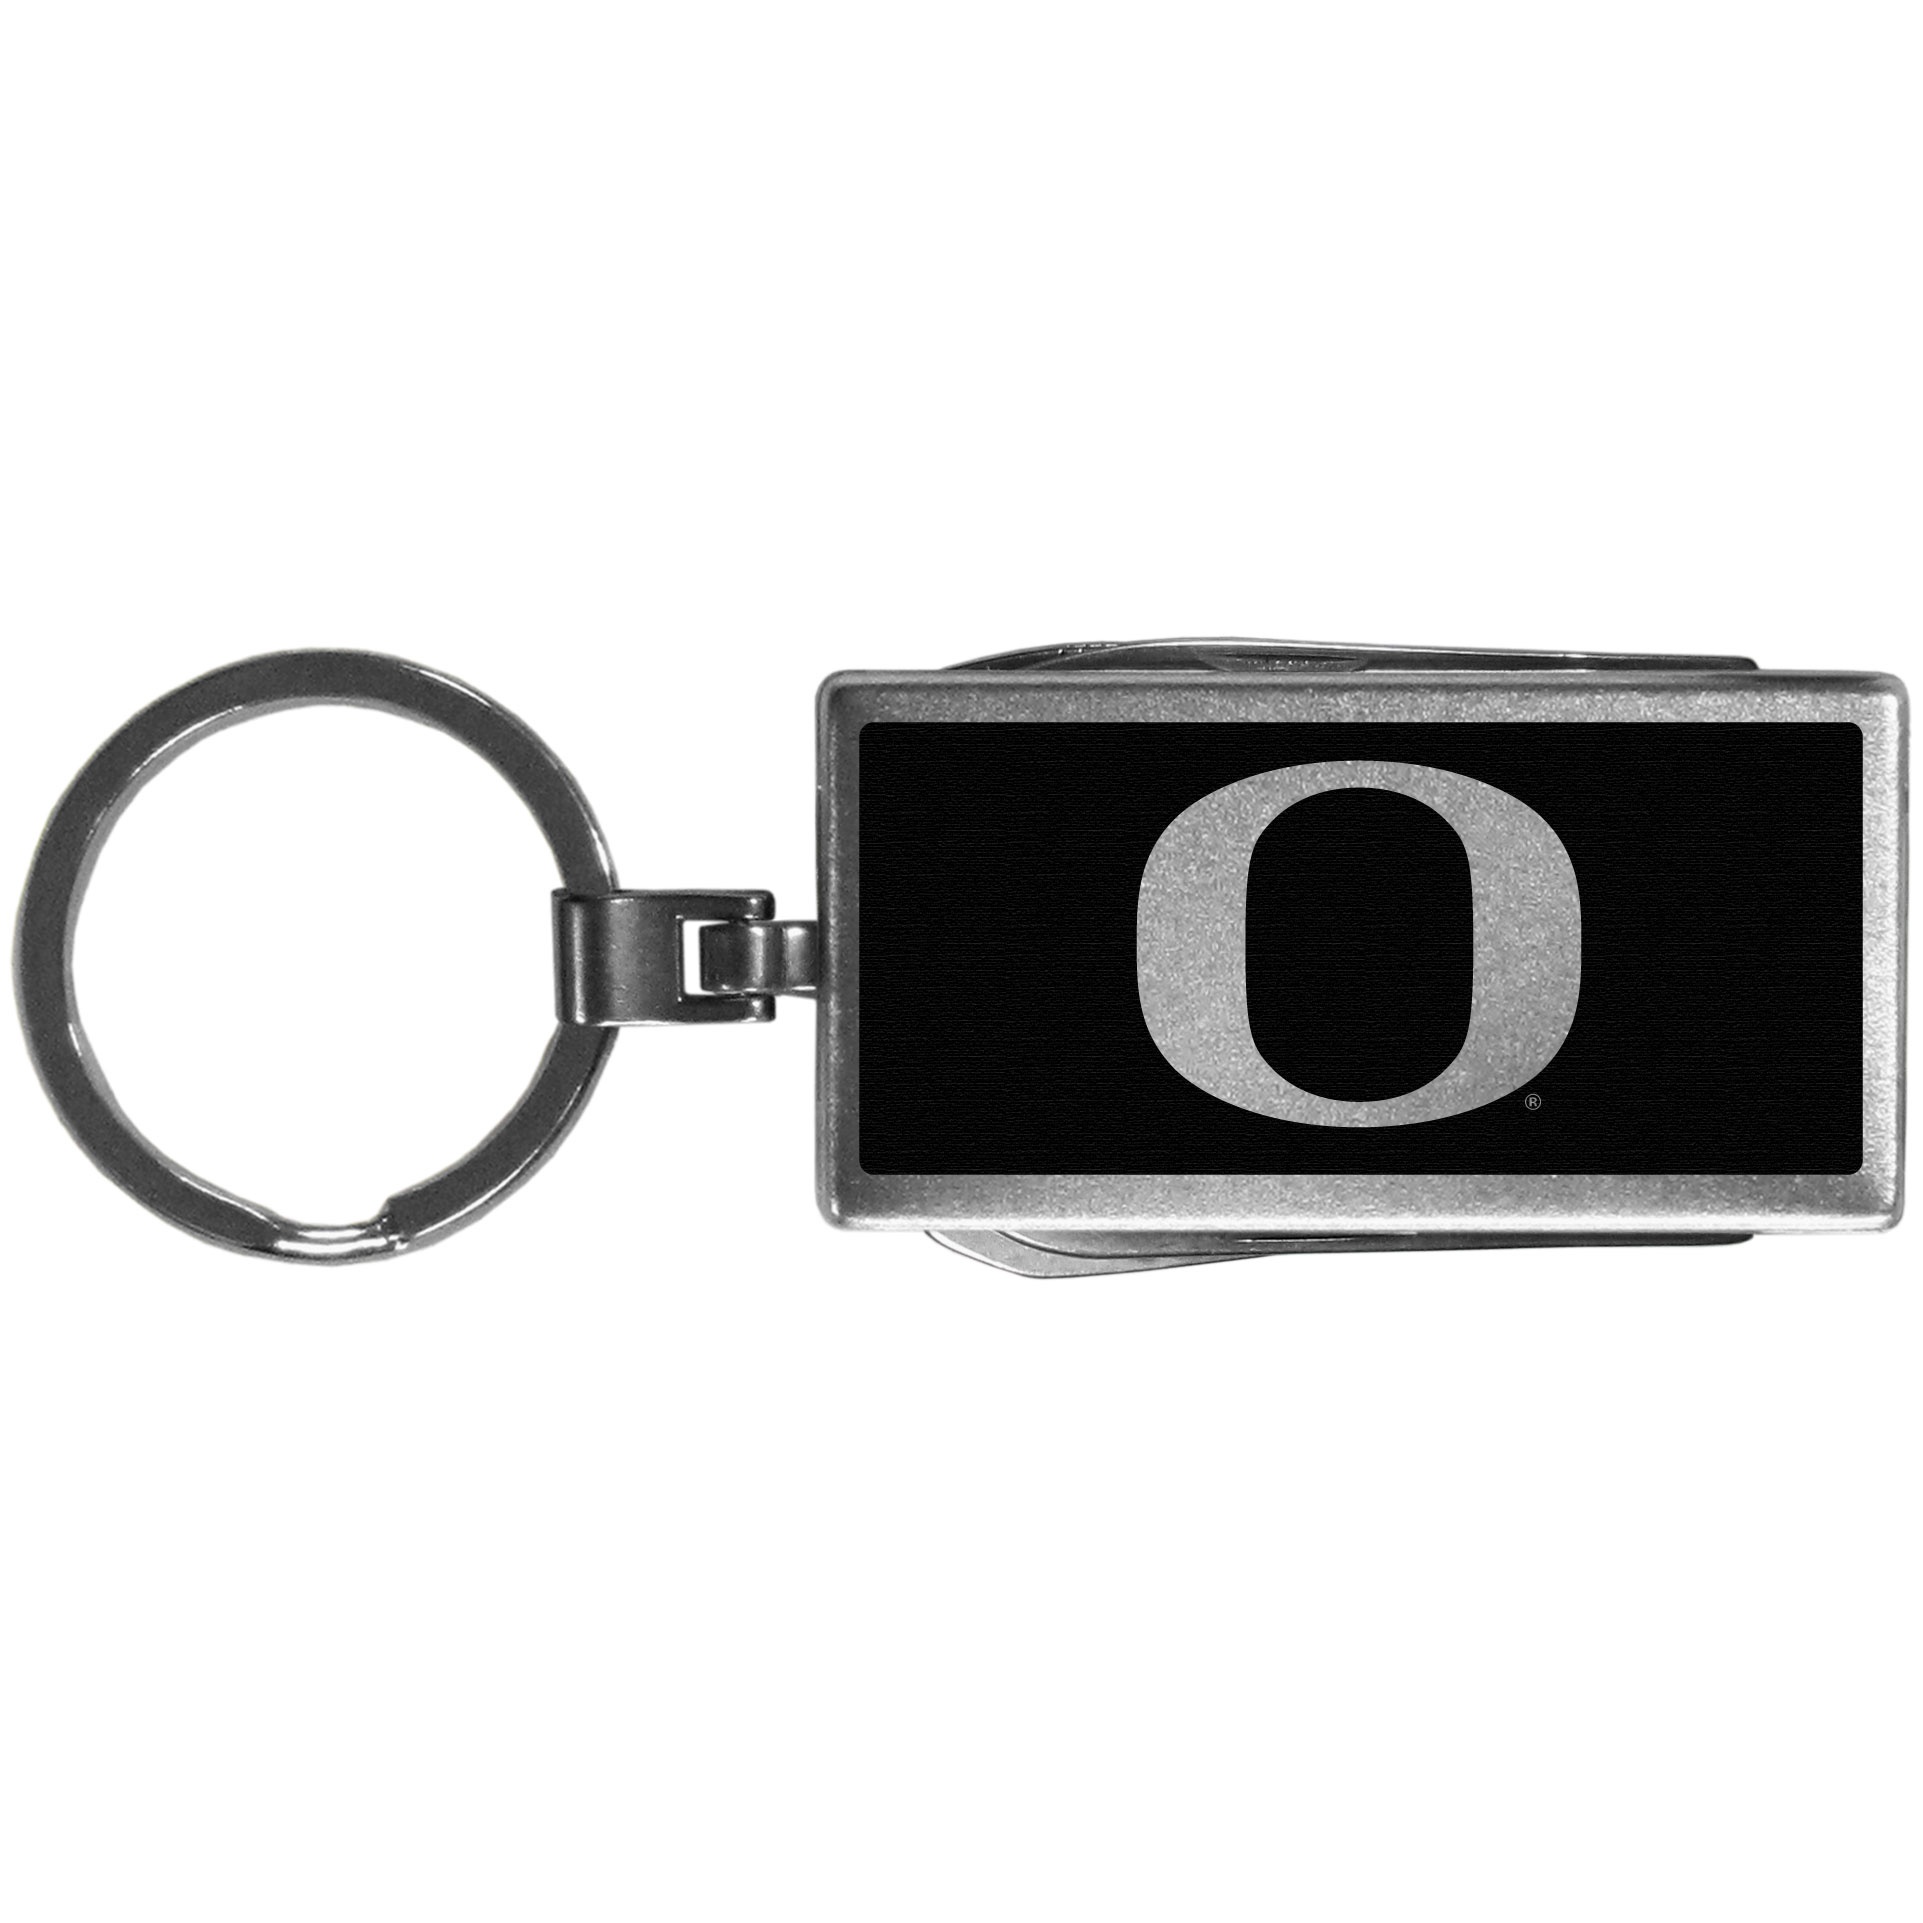 Oregon Ducks Multi-tool Key Chain, Black - Be the hero at the tailgate, camping, or on a Friday night with your Oregon Ducks Multi-Tool Keychain which comes complete with bottle opener, scissors, knife, nail file and screw driver. Be it opening a package or a beverage Siskiyou's Multi-Tool Keychain goes wherever your keys do. The keychain hangs at 4 inches long when closed.